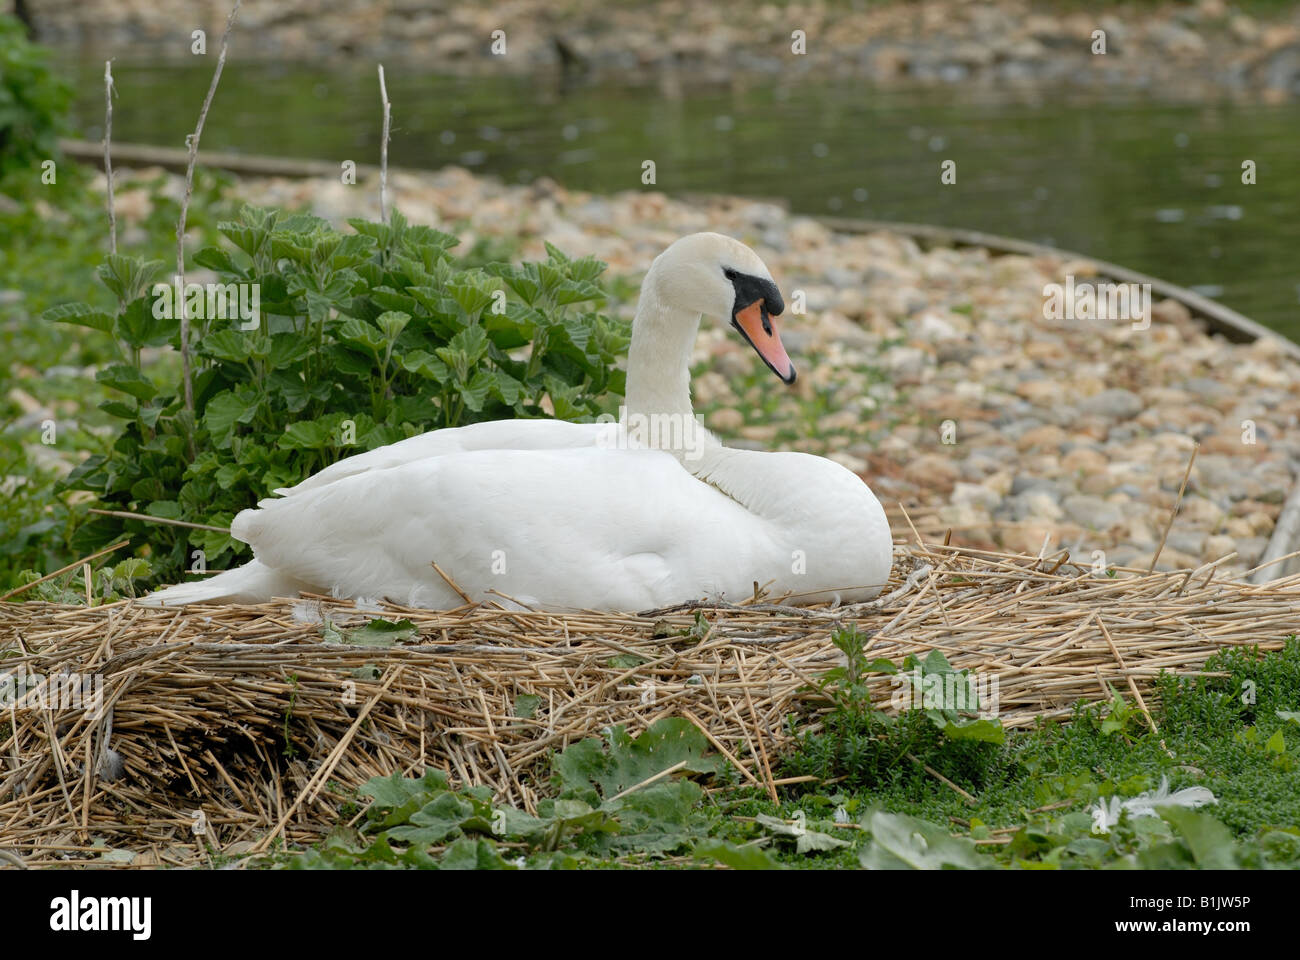 Mute swan pen on a nest with eggs at Abbotsbury Swannery - Stock Image